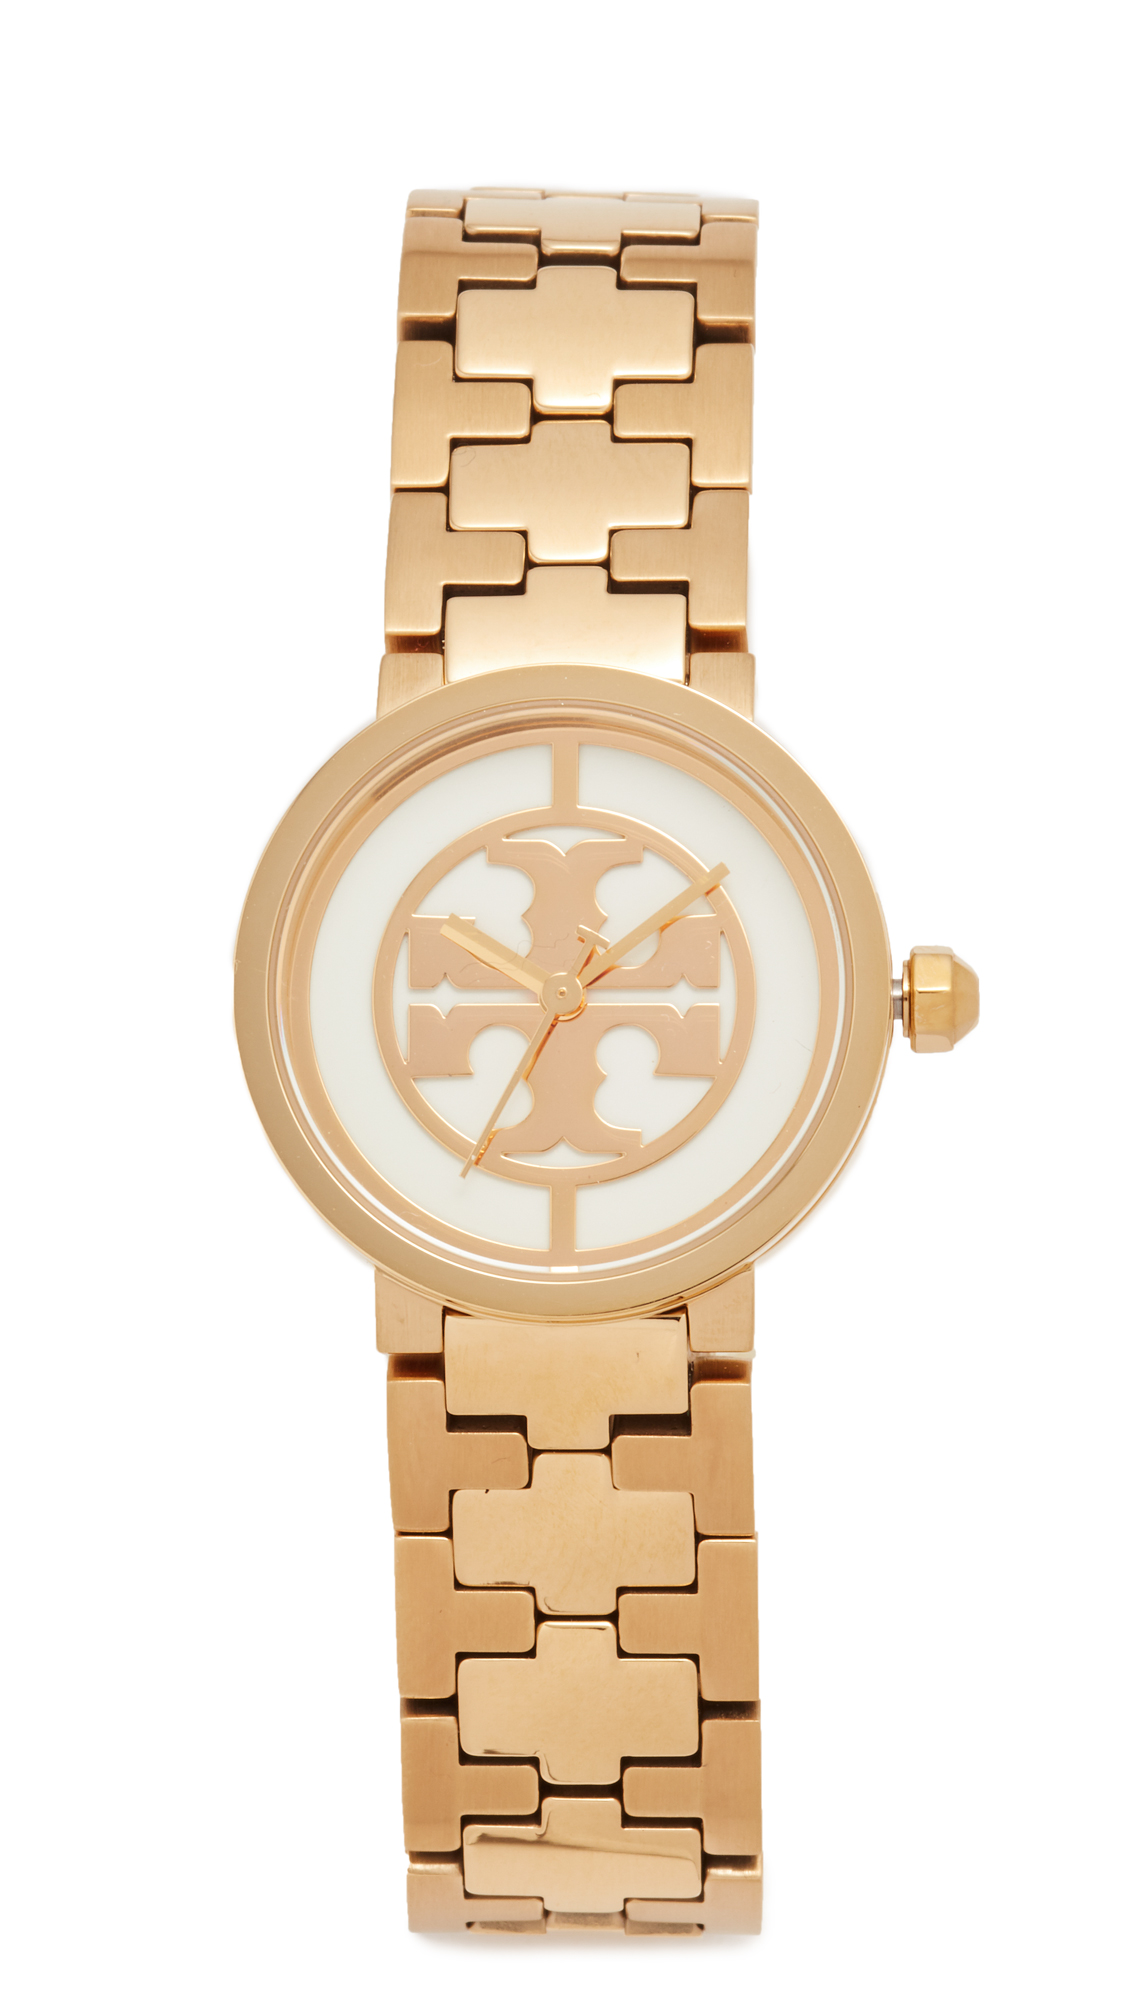 Tory Burch The Small Reva Watch - Gold/Ivory